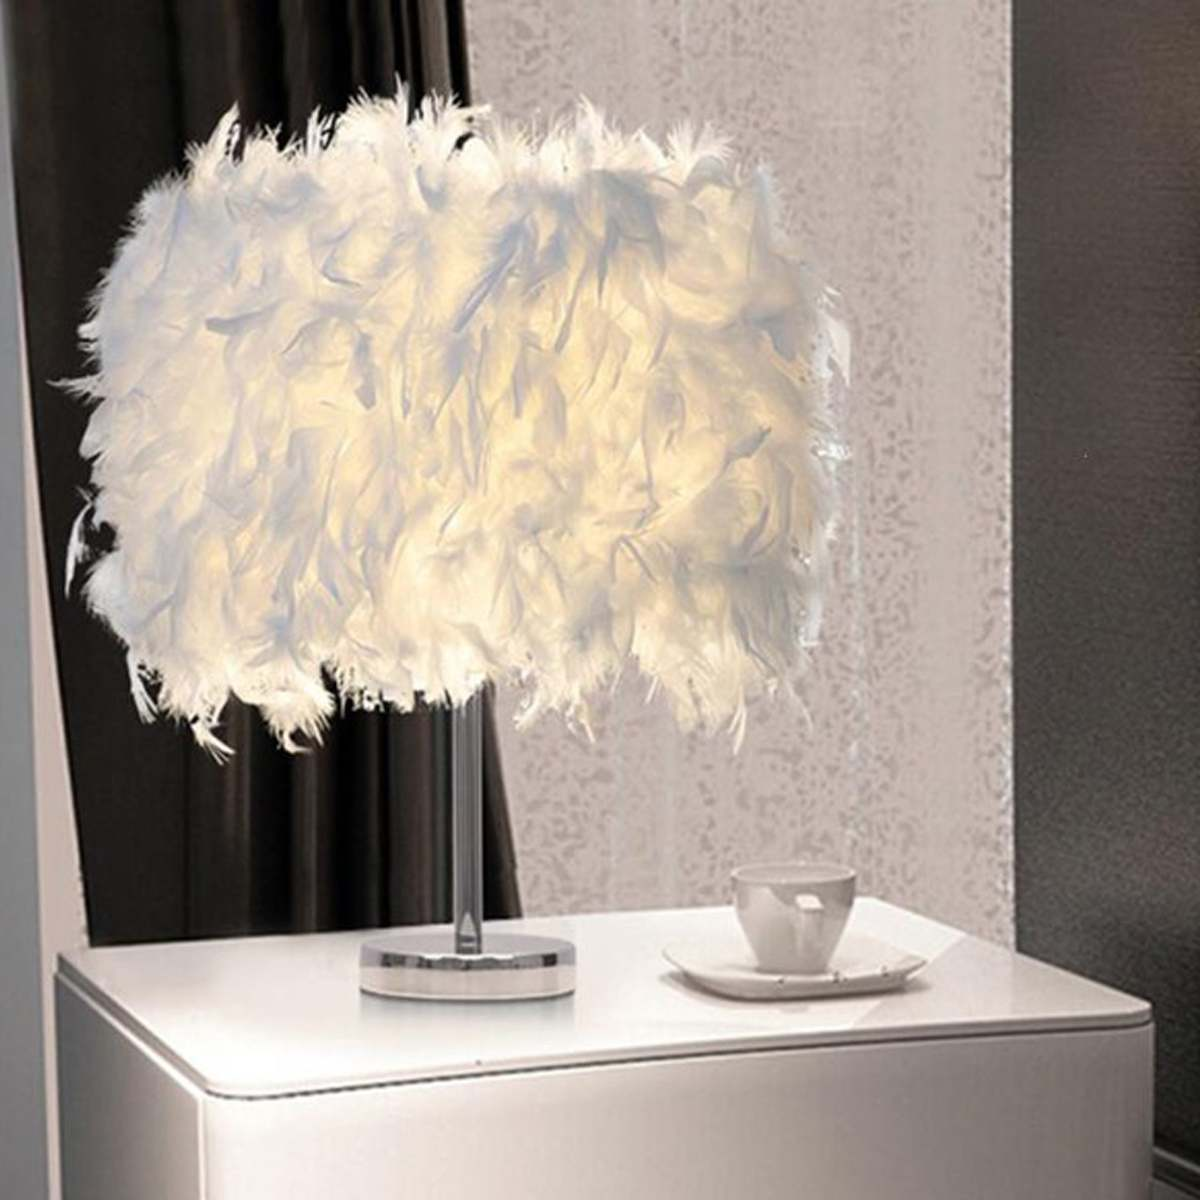 220V Feather Shade Metal Table Lamp Bedside Desk Vintage Night Light Christmas Decor Soft Vintage Bedroom Study Room White